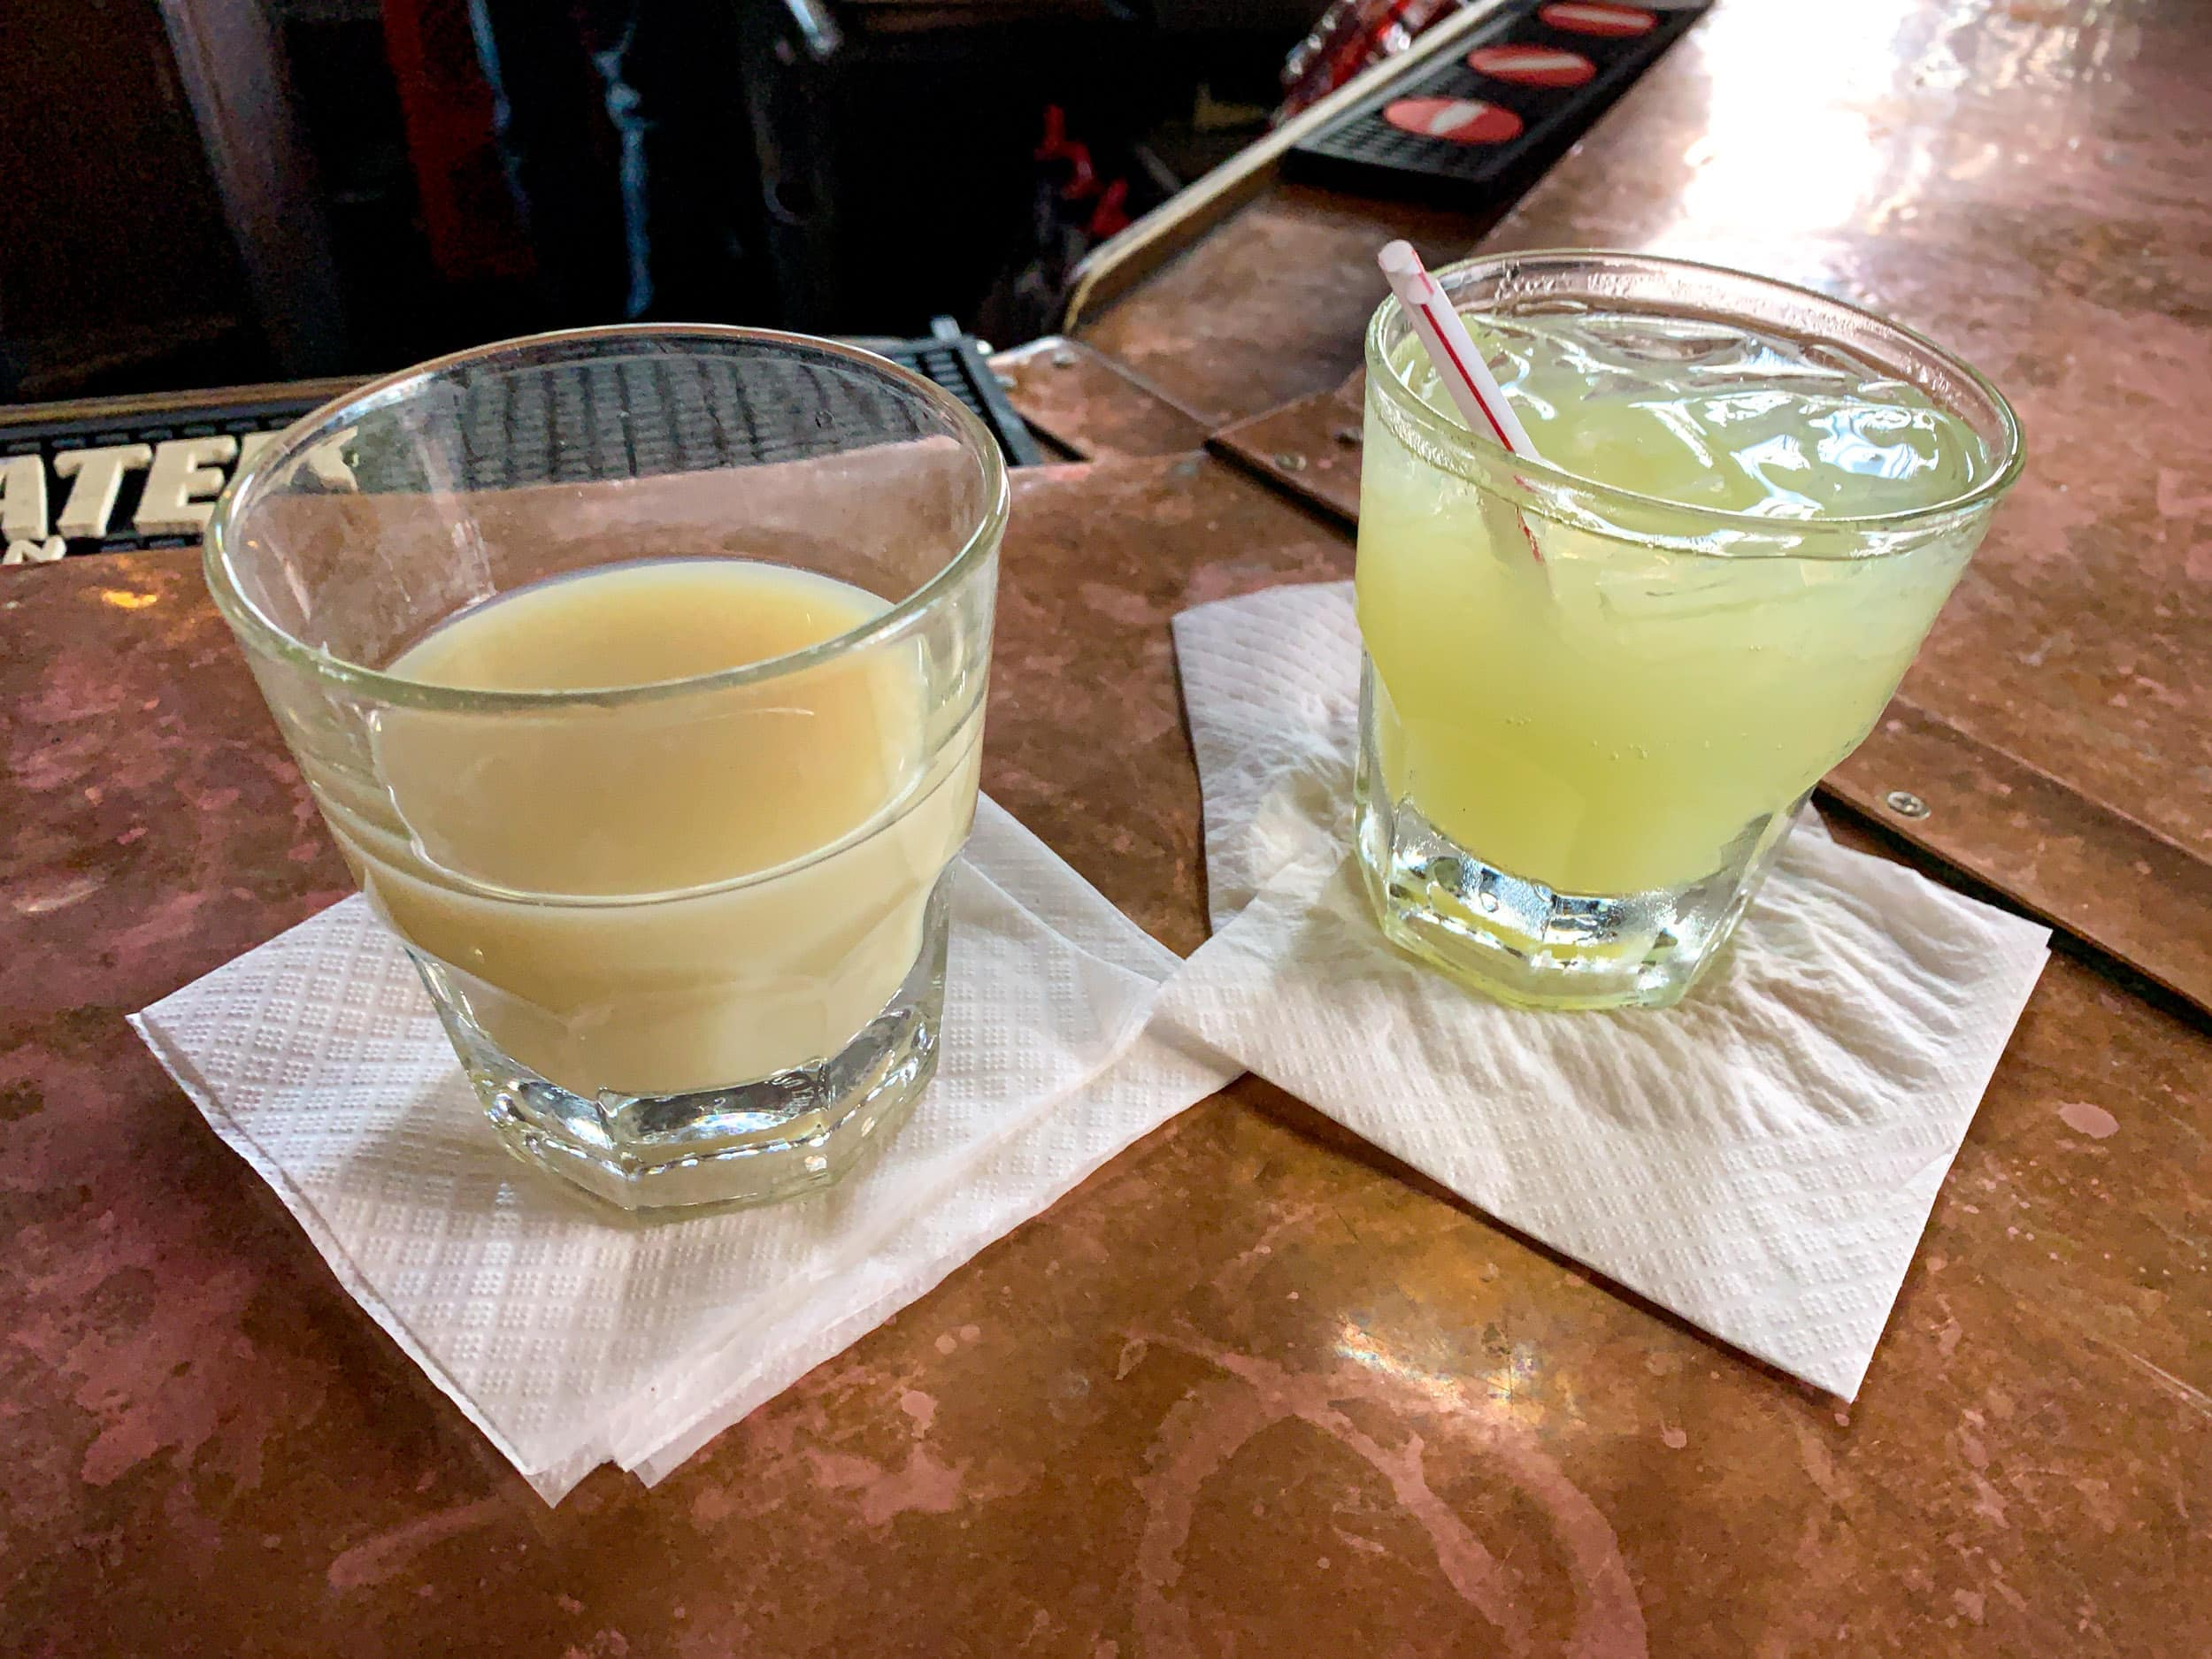 St. George Absinthe Verte (left, 120 proof) and an absinthe frappe (right)